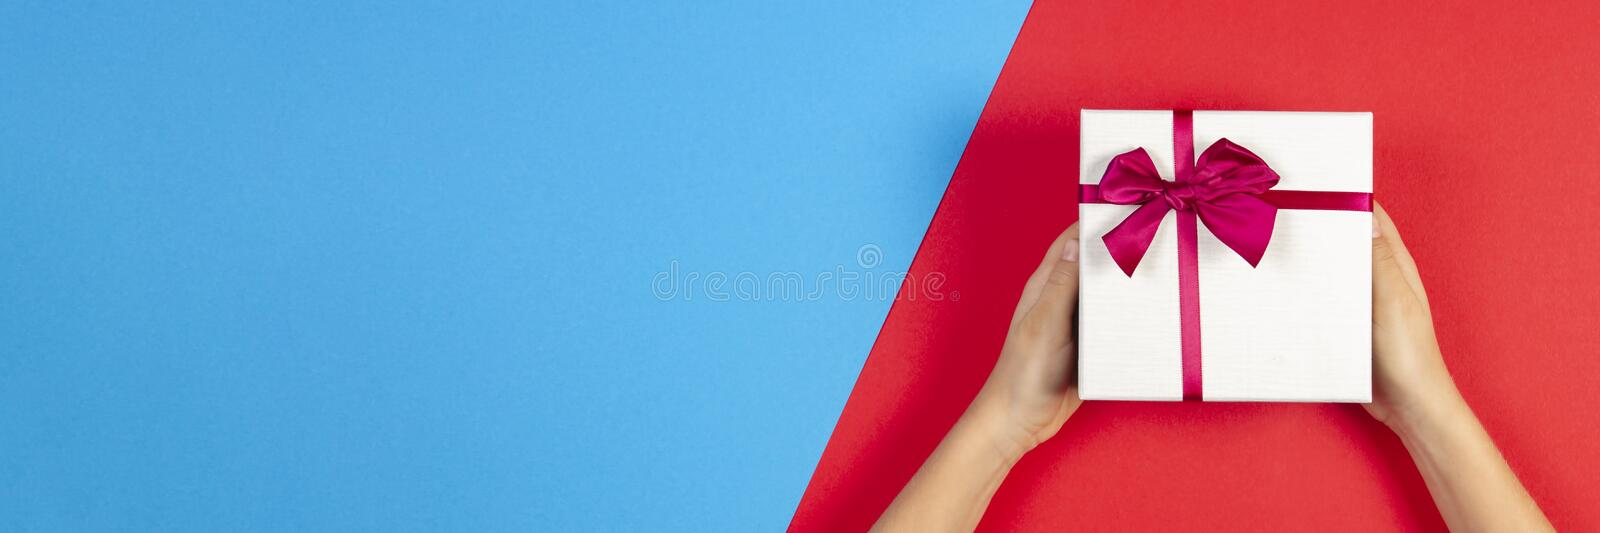 Kid hands holding present gift box with ribbon on red and blue background royalty free stock images